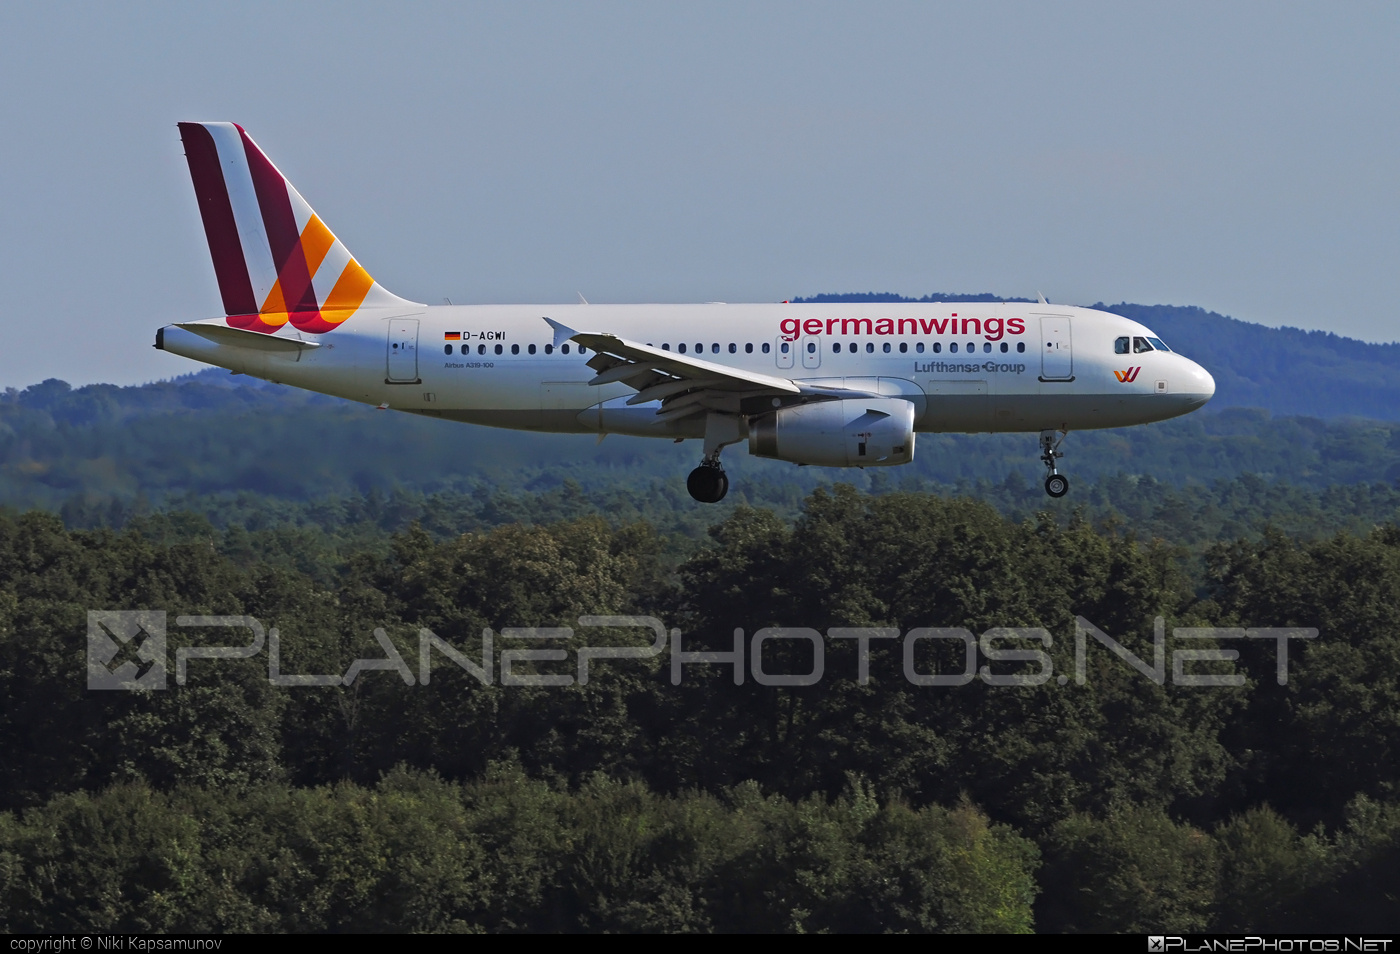 Airbus A319-132 - D-AGWI operated by Germanwings #a319 #a320family #airbus #airbus319